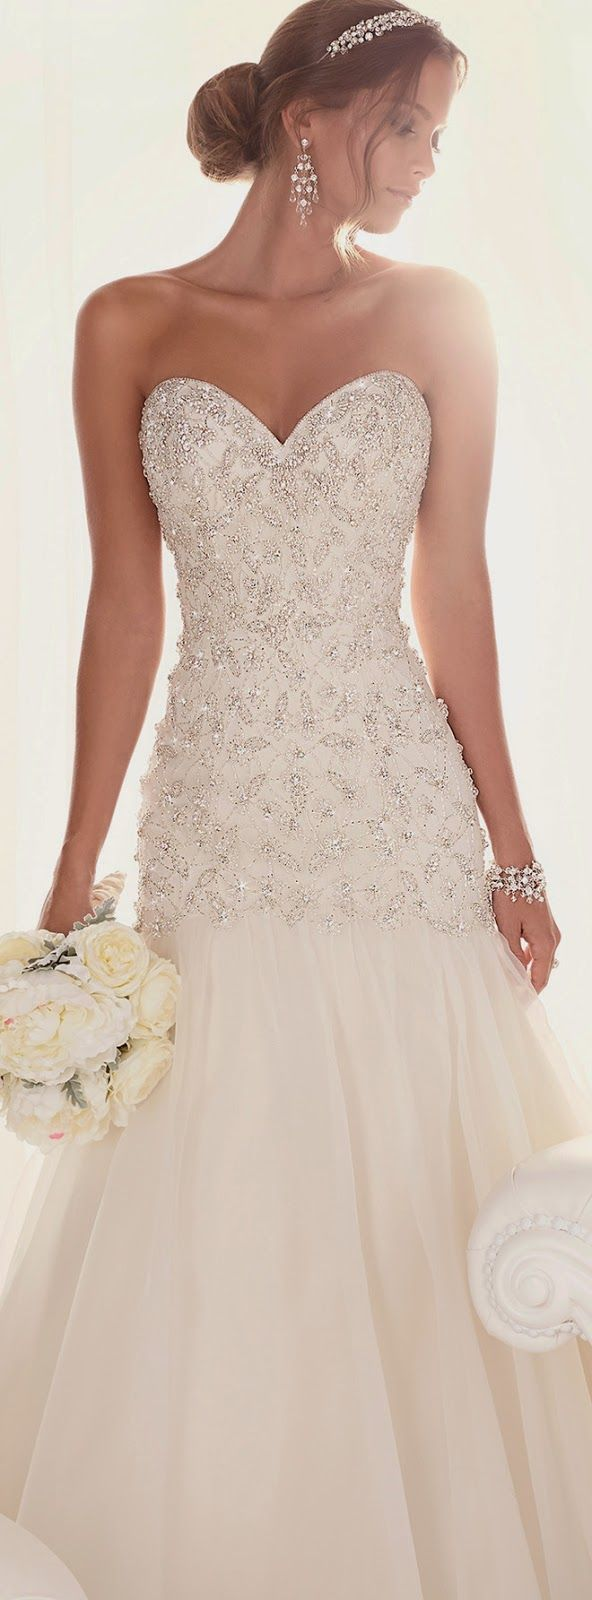 fab sparkly wedding dresses best images about Fab on Pinterest Wedding shoes Wedding dress designers and Gowns